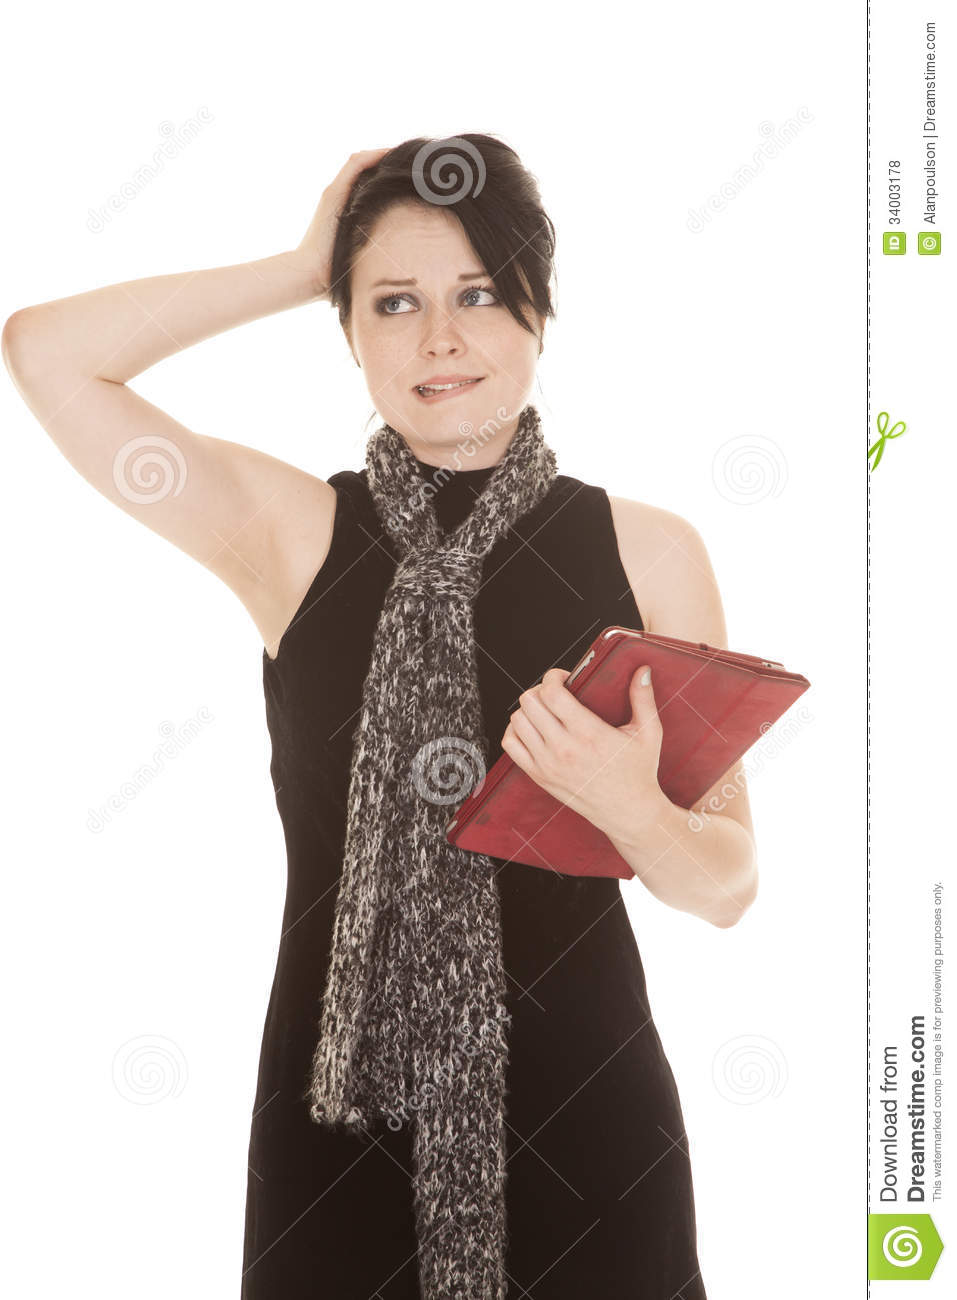 Woman black dress scarf tablet confused